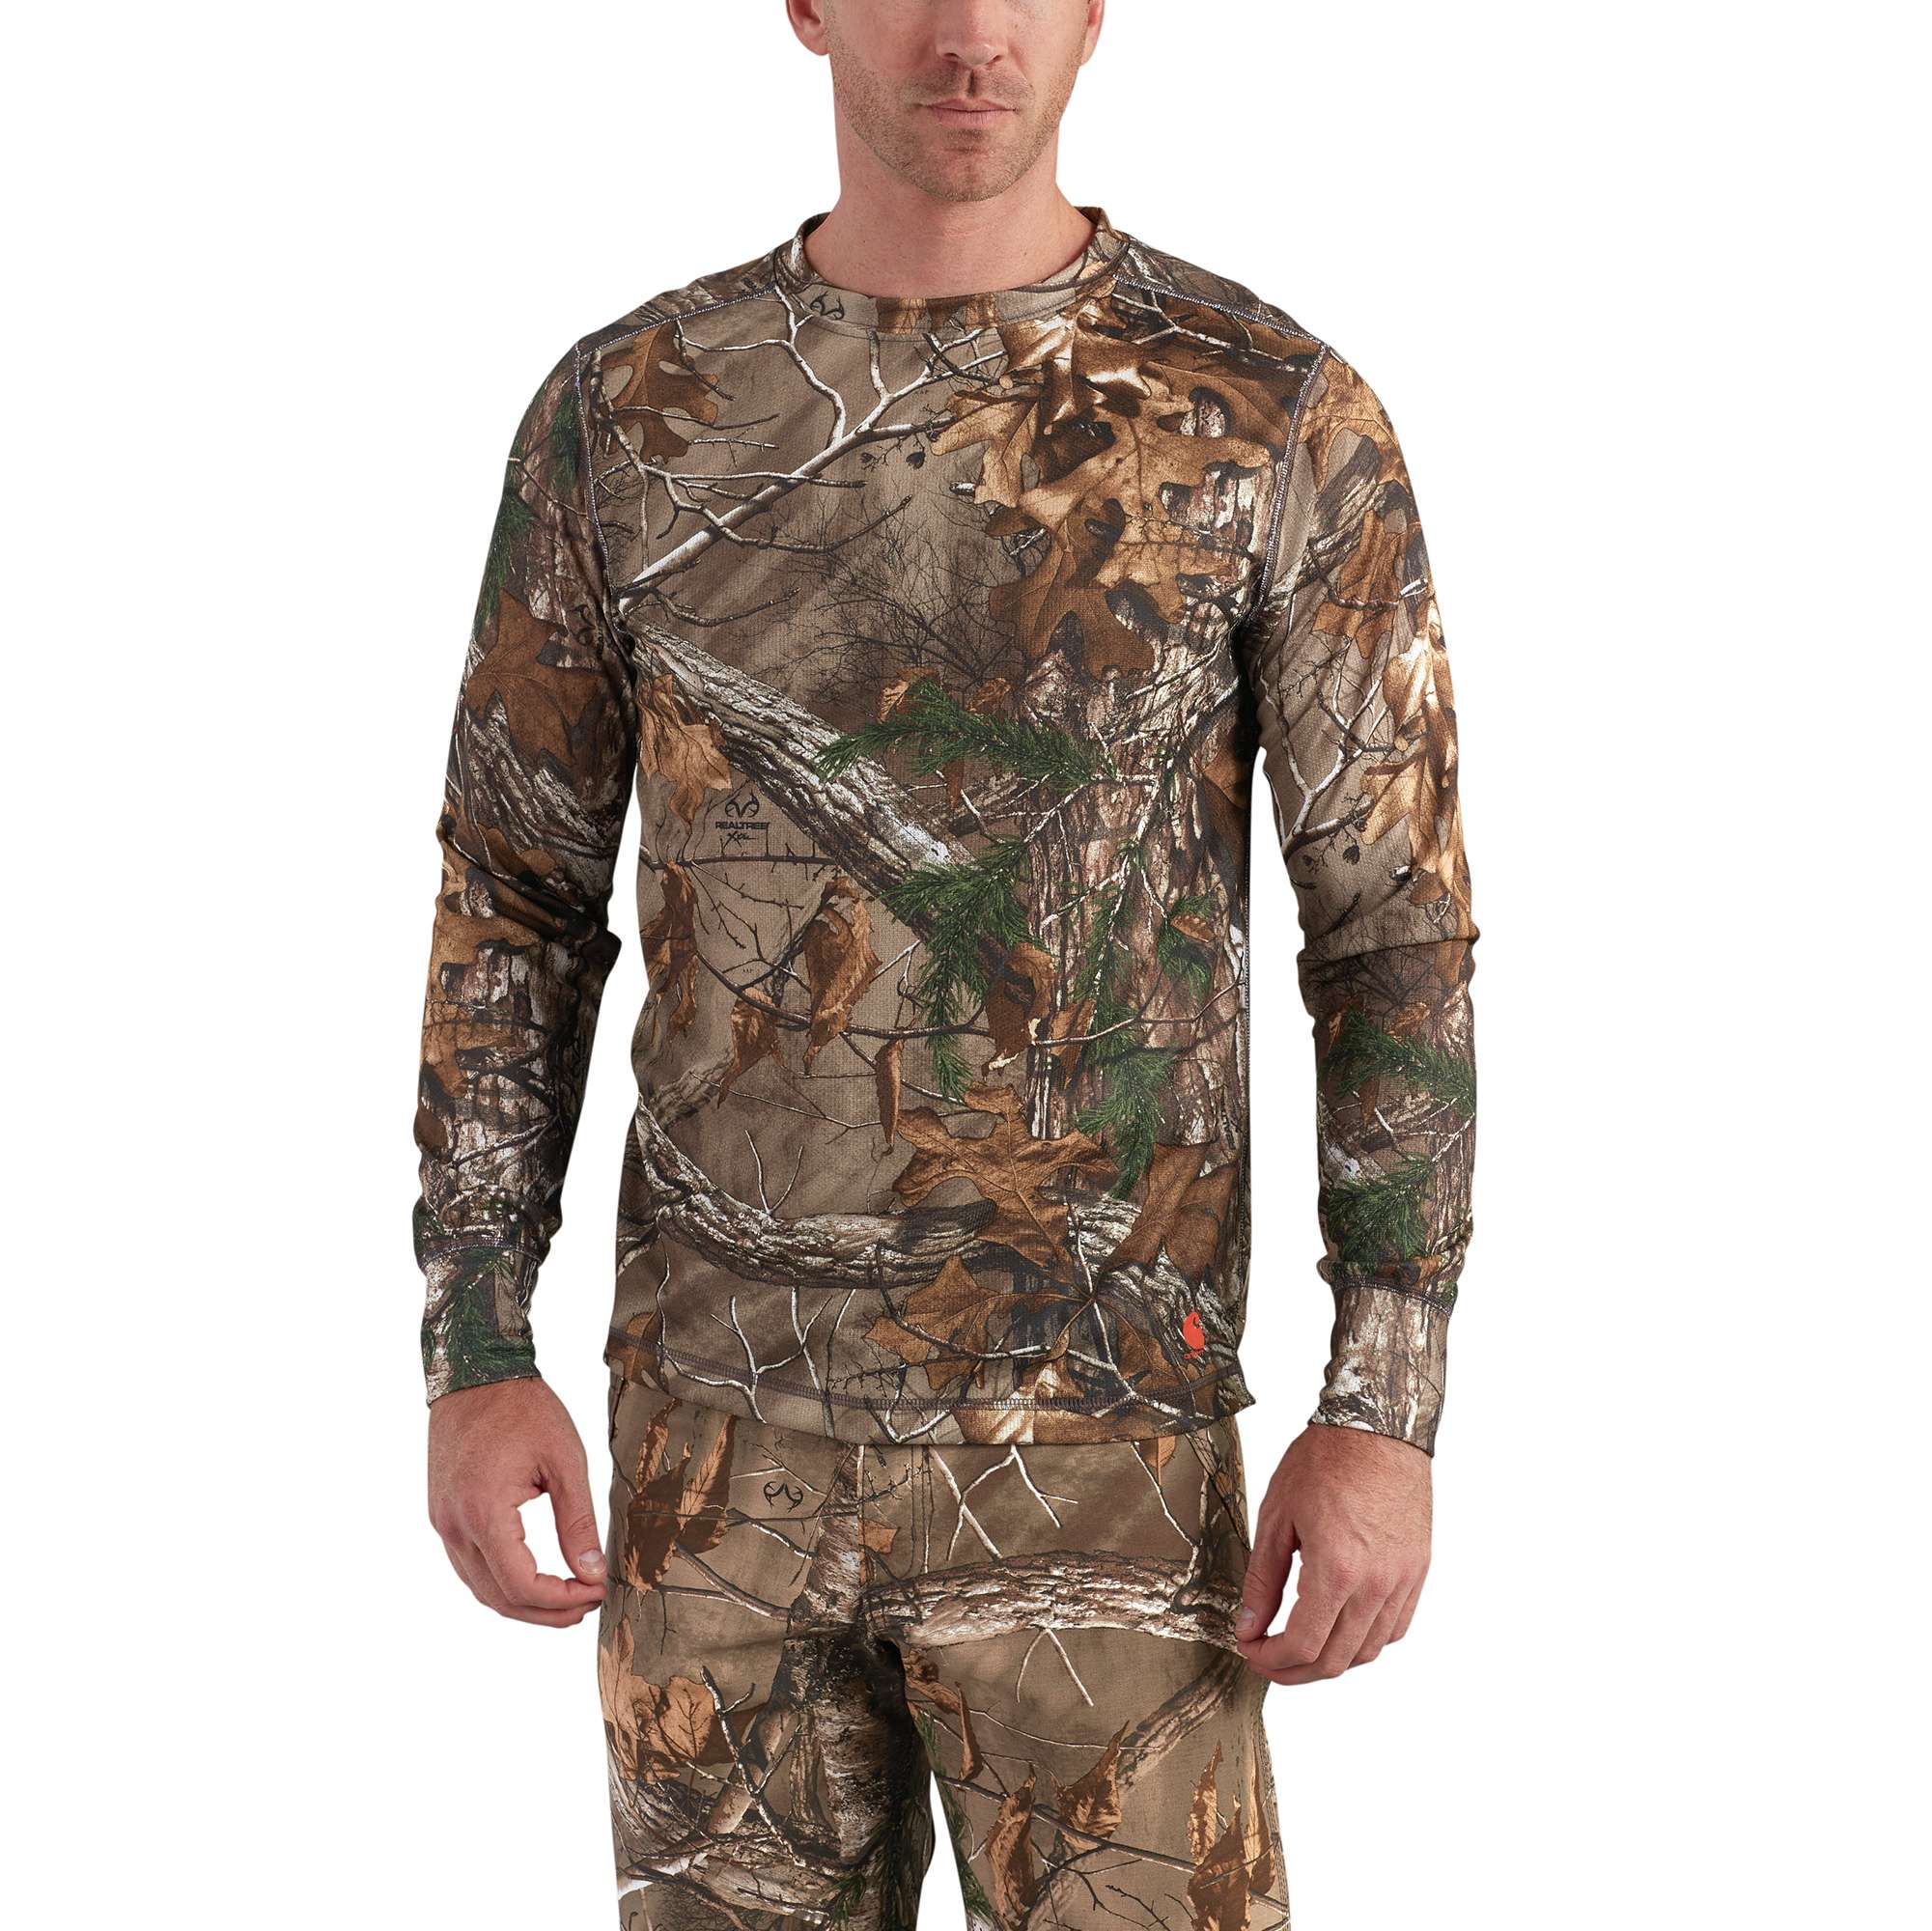 Carhartt Base Force Extremes Cold Weather Camo Crewneck